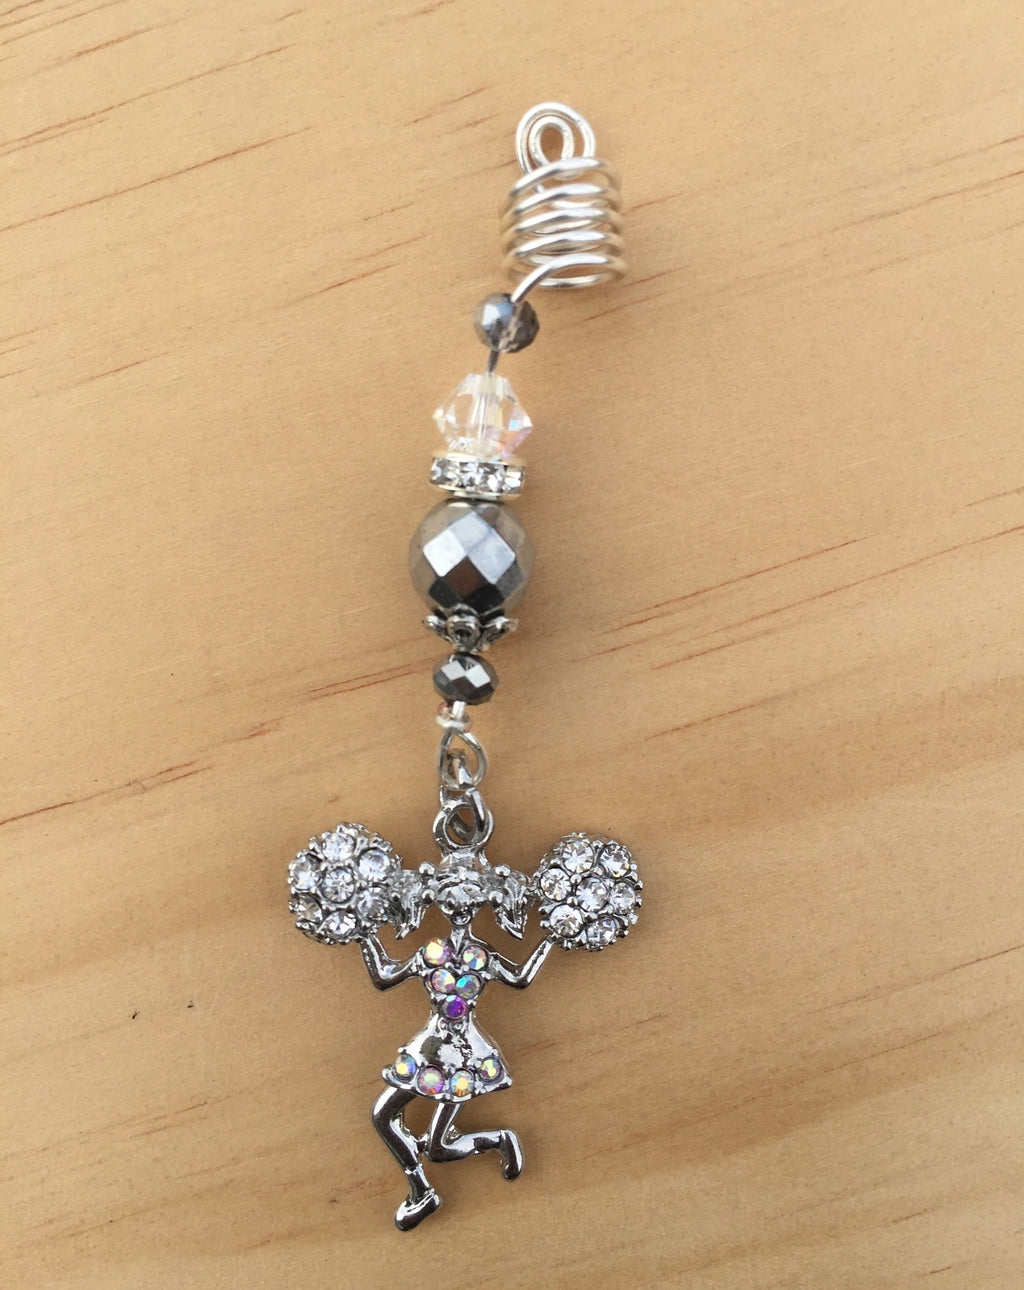 SILVER HEMATITE CHEERLEADER LOC JEWEL - TIFFANY'S LOC JEWELS